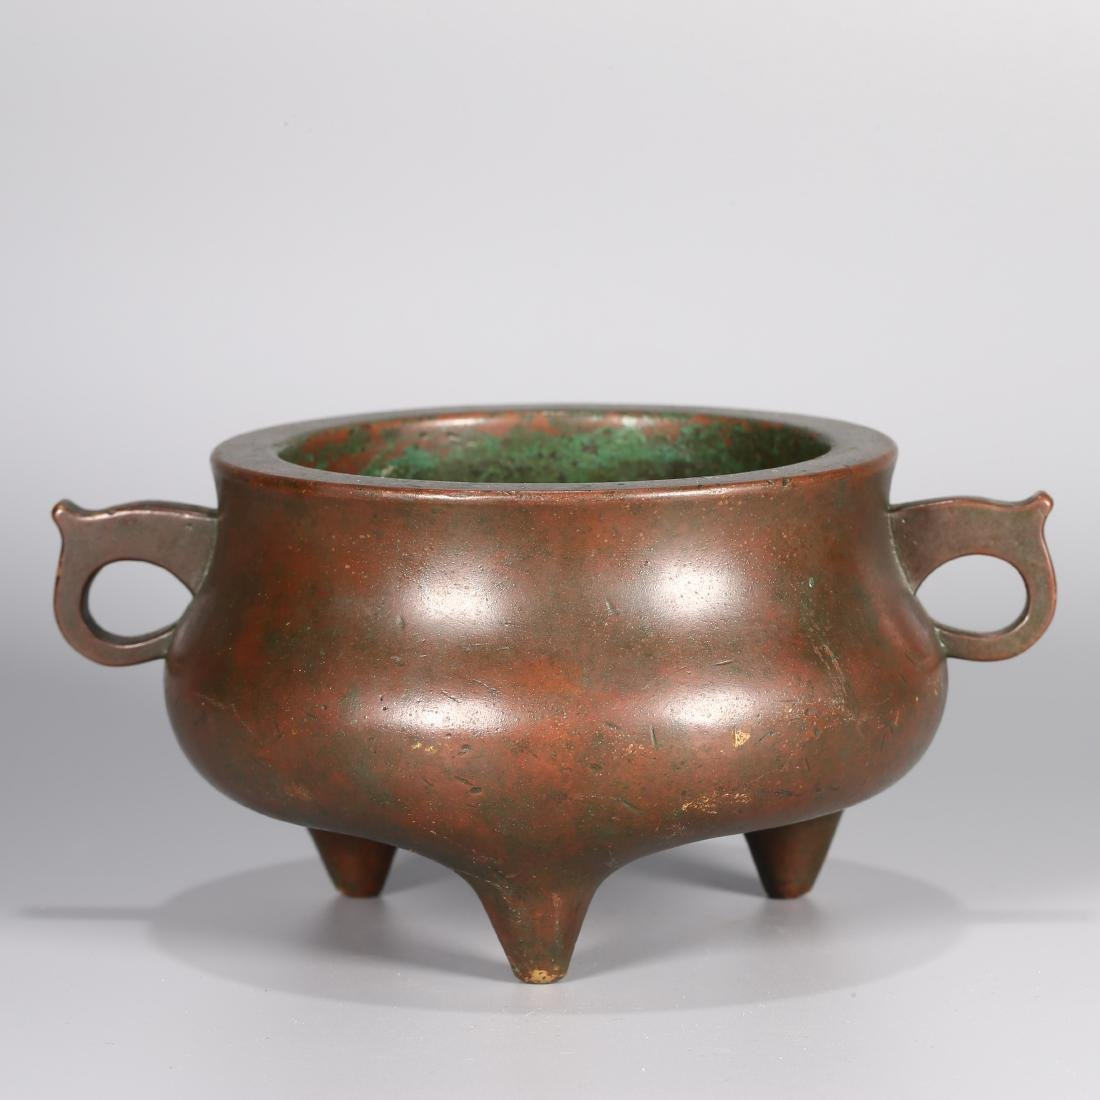 A CHINESE BRONZE TRIPOD DOUBLE HANDLED CENSER